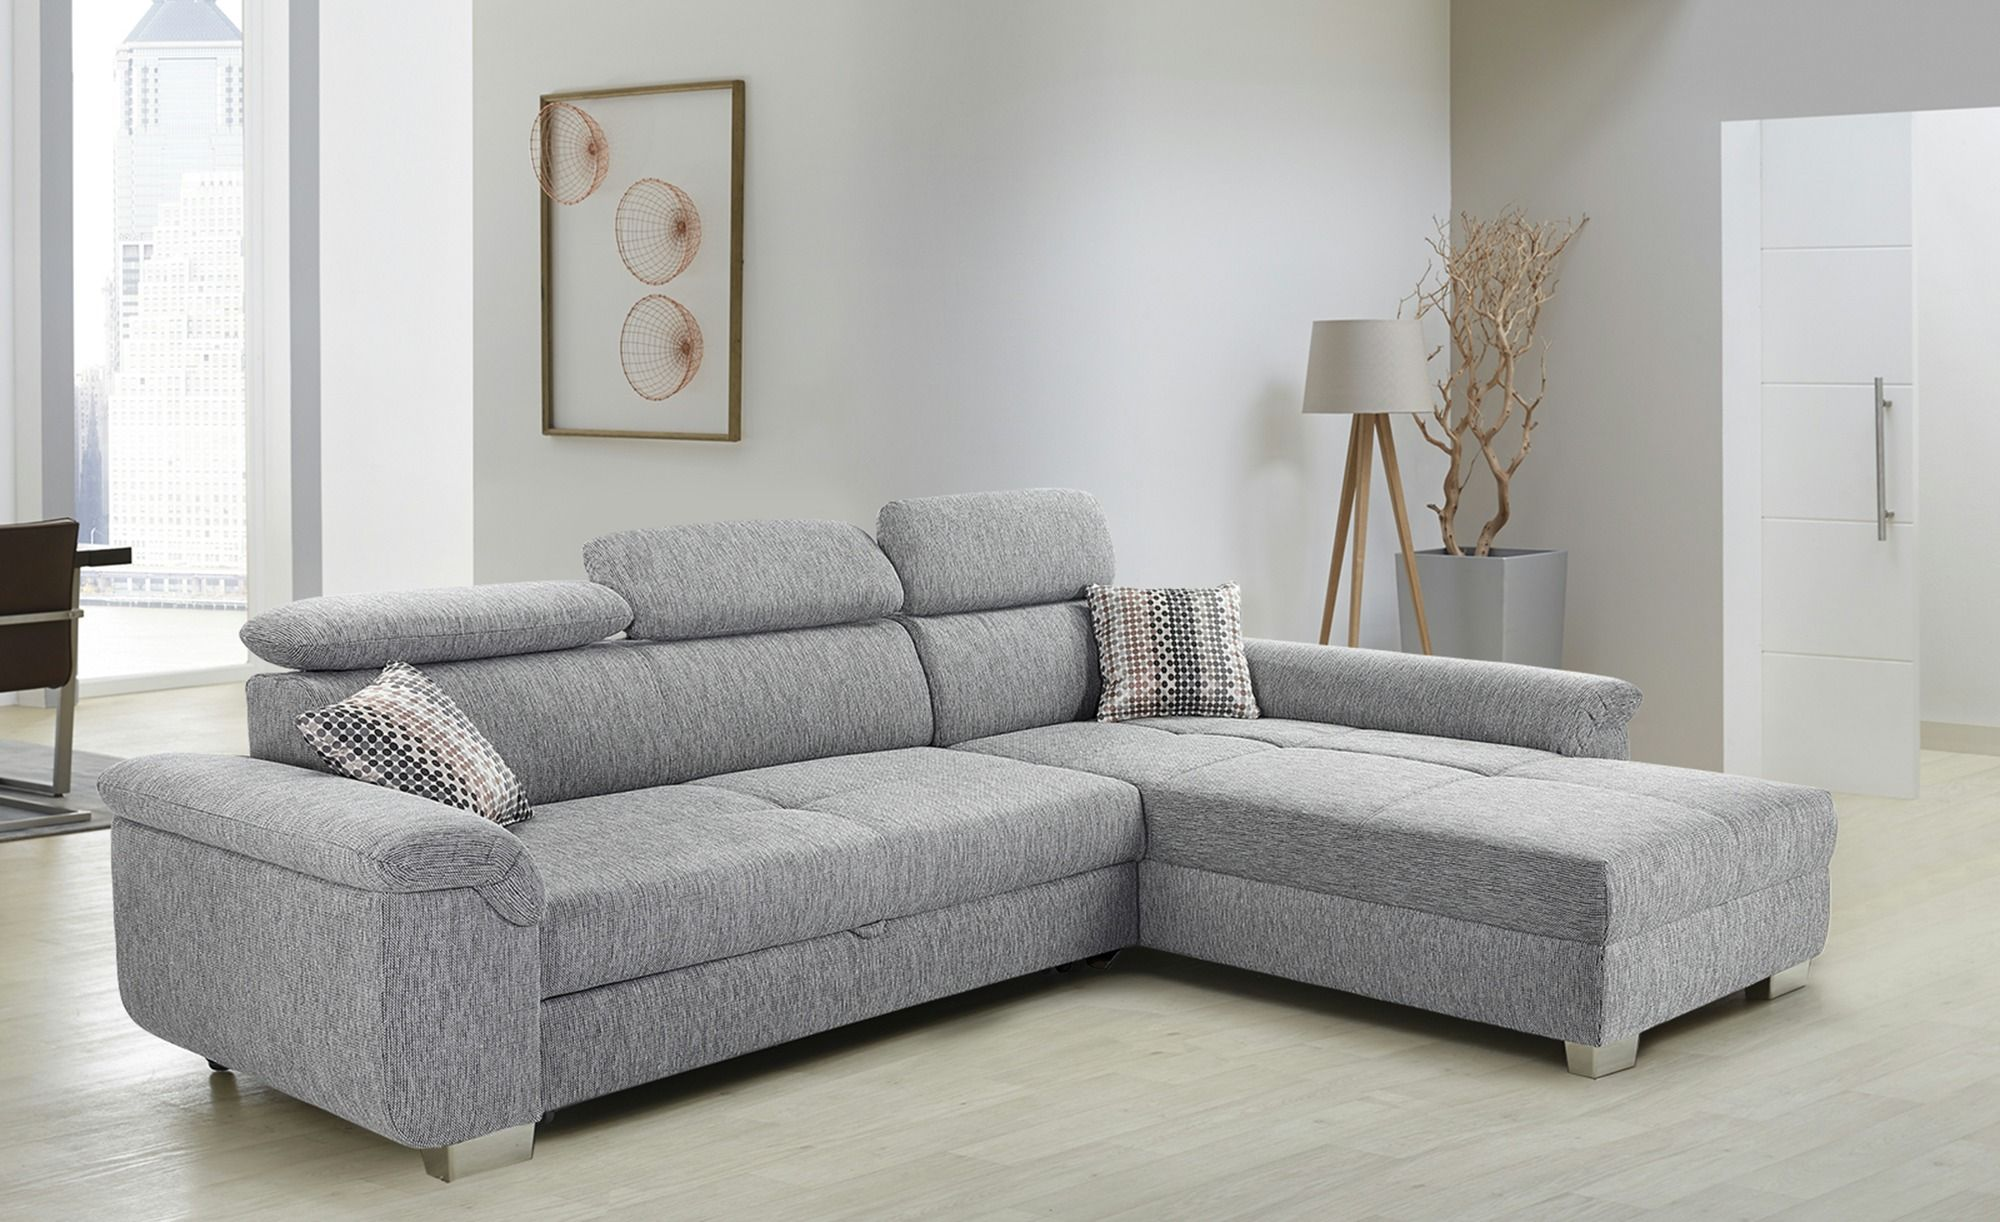 Opti Ecksofa Ecksofa Grau Webstoff Liya In 2019 Products Sofa Furniture